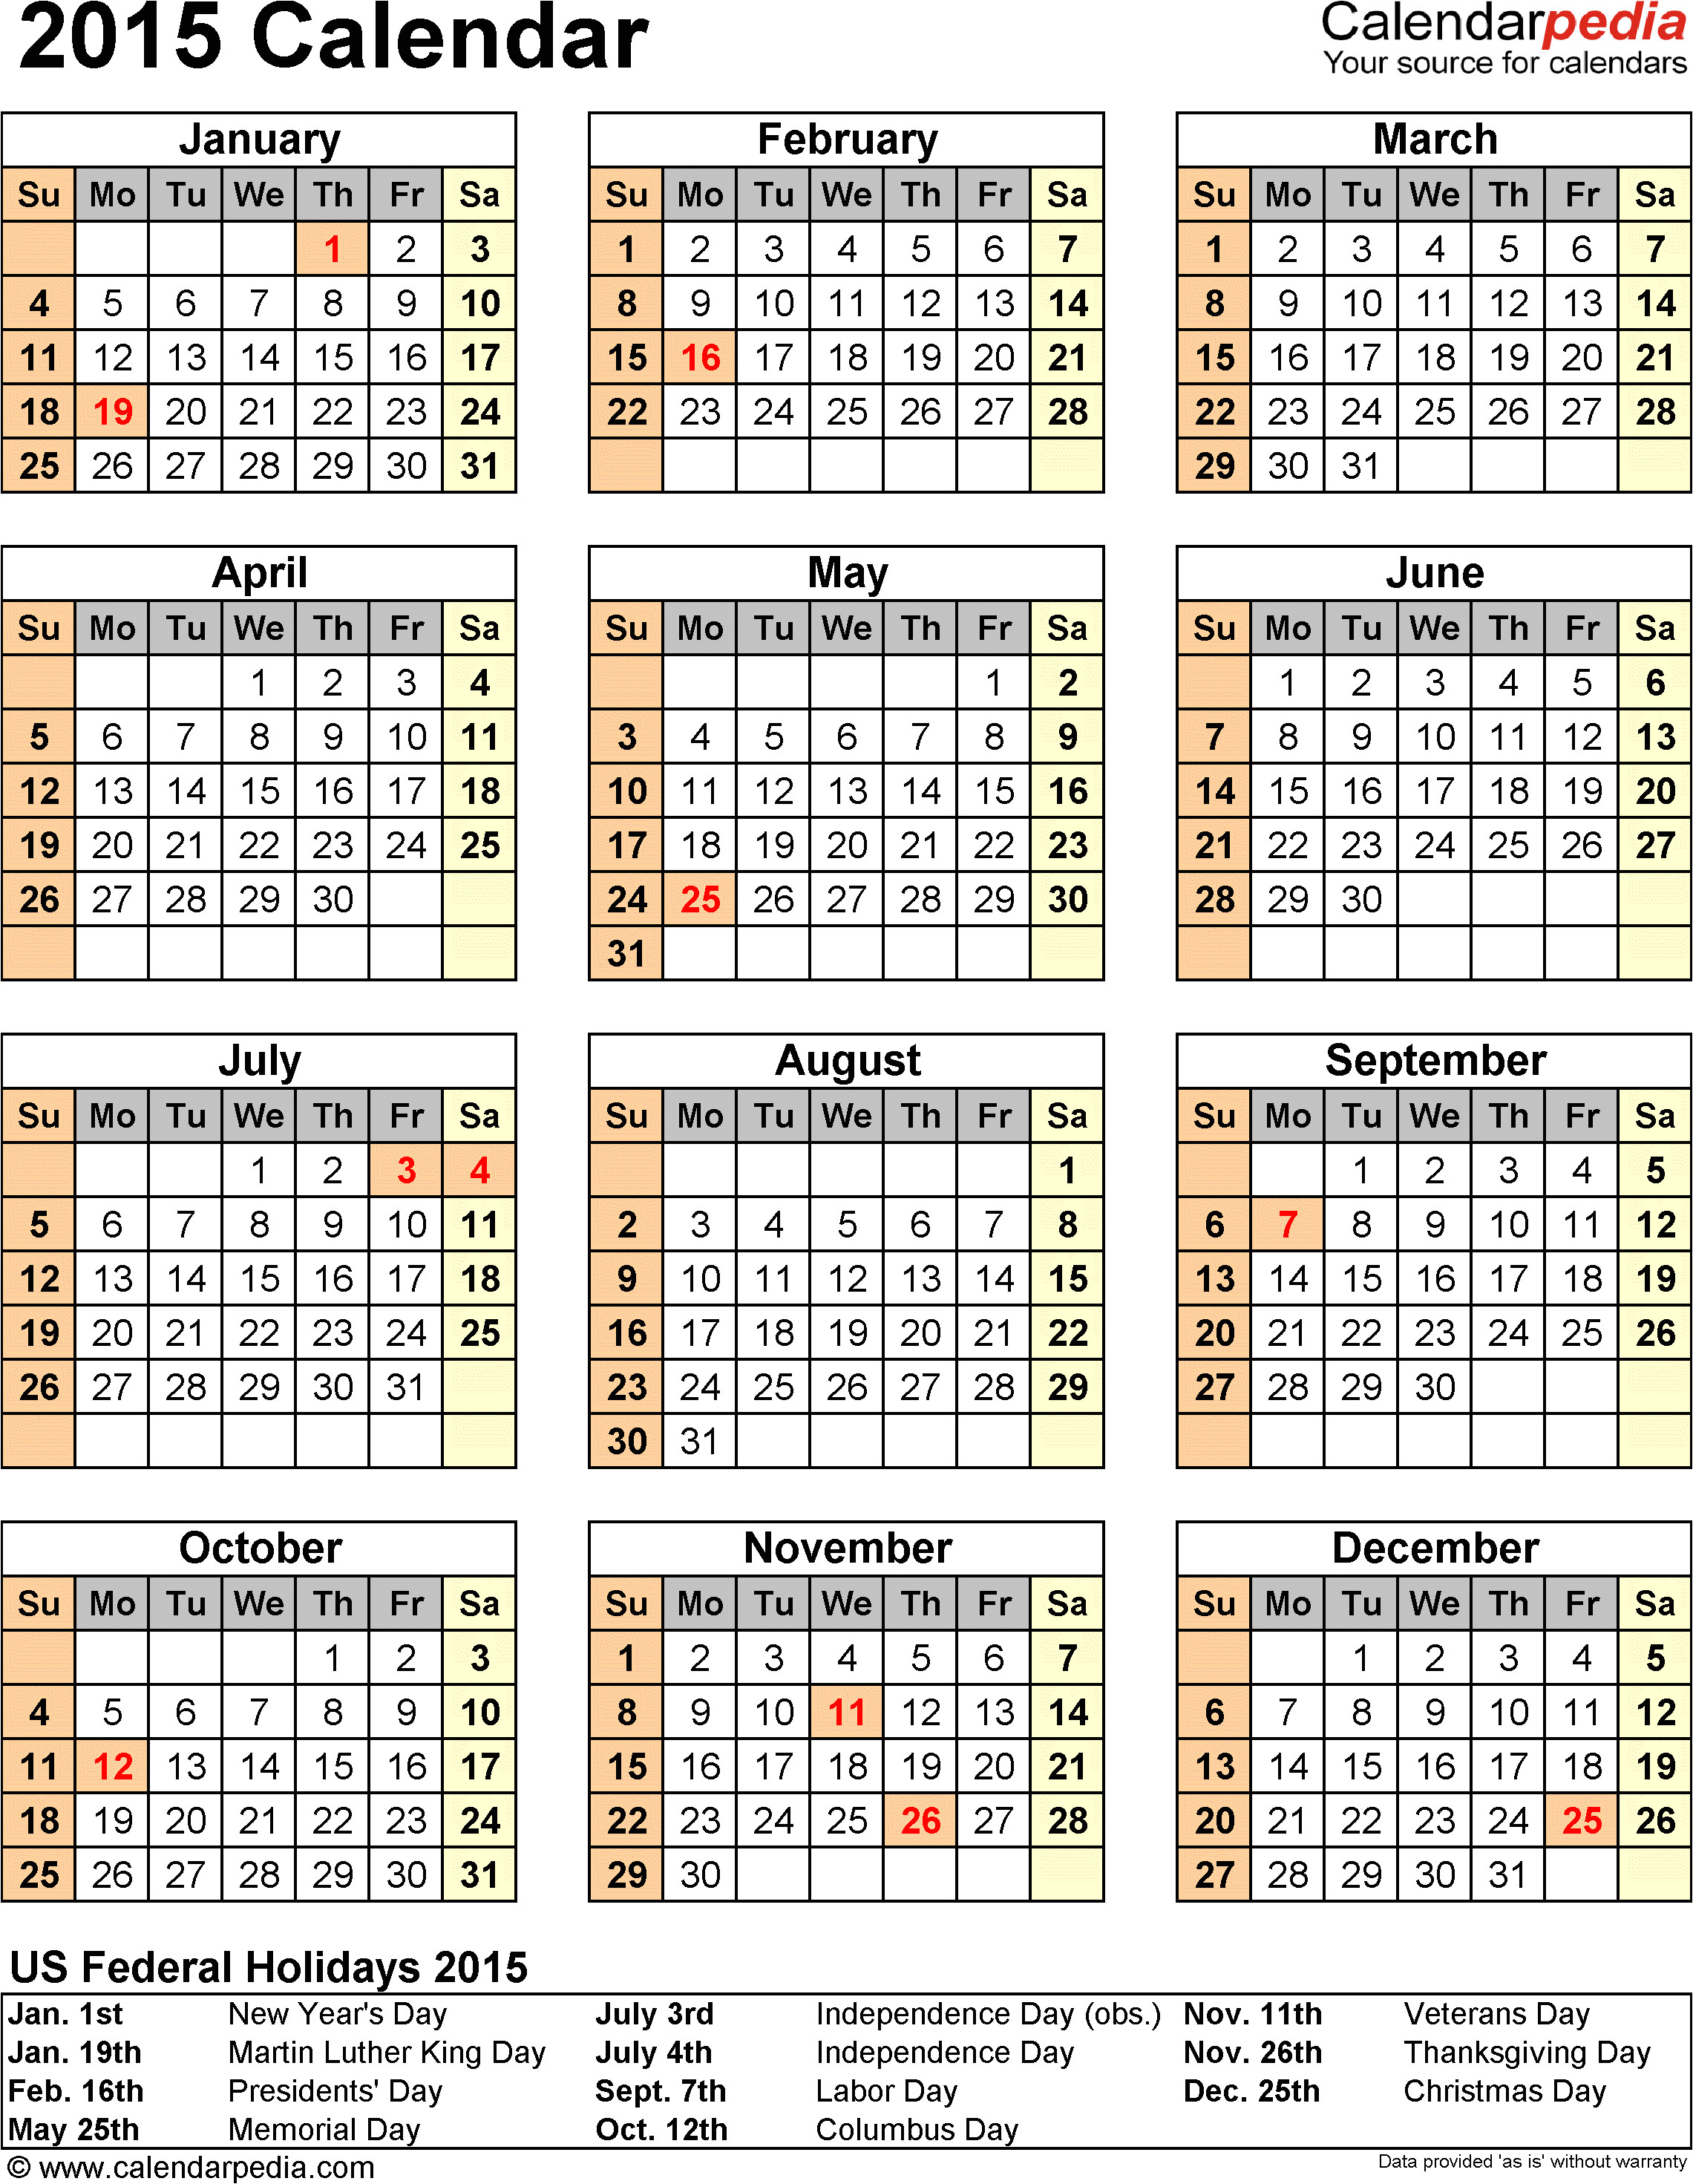 2015 Calendar Template with Canadian Holidays 2015 Calendar with Federal Holidays Excel Pdf Word Templates